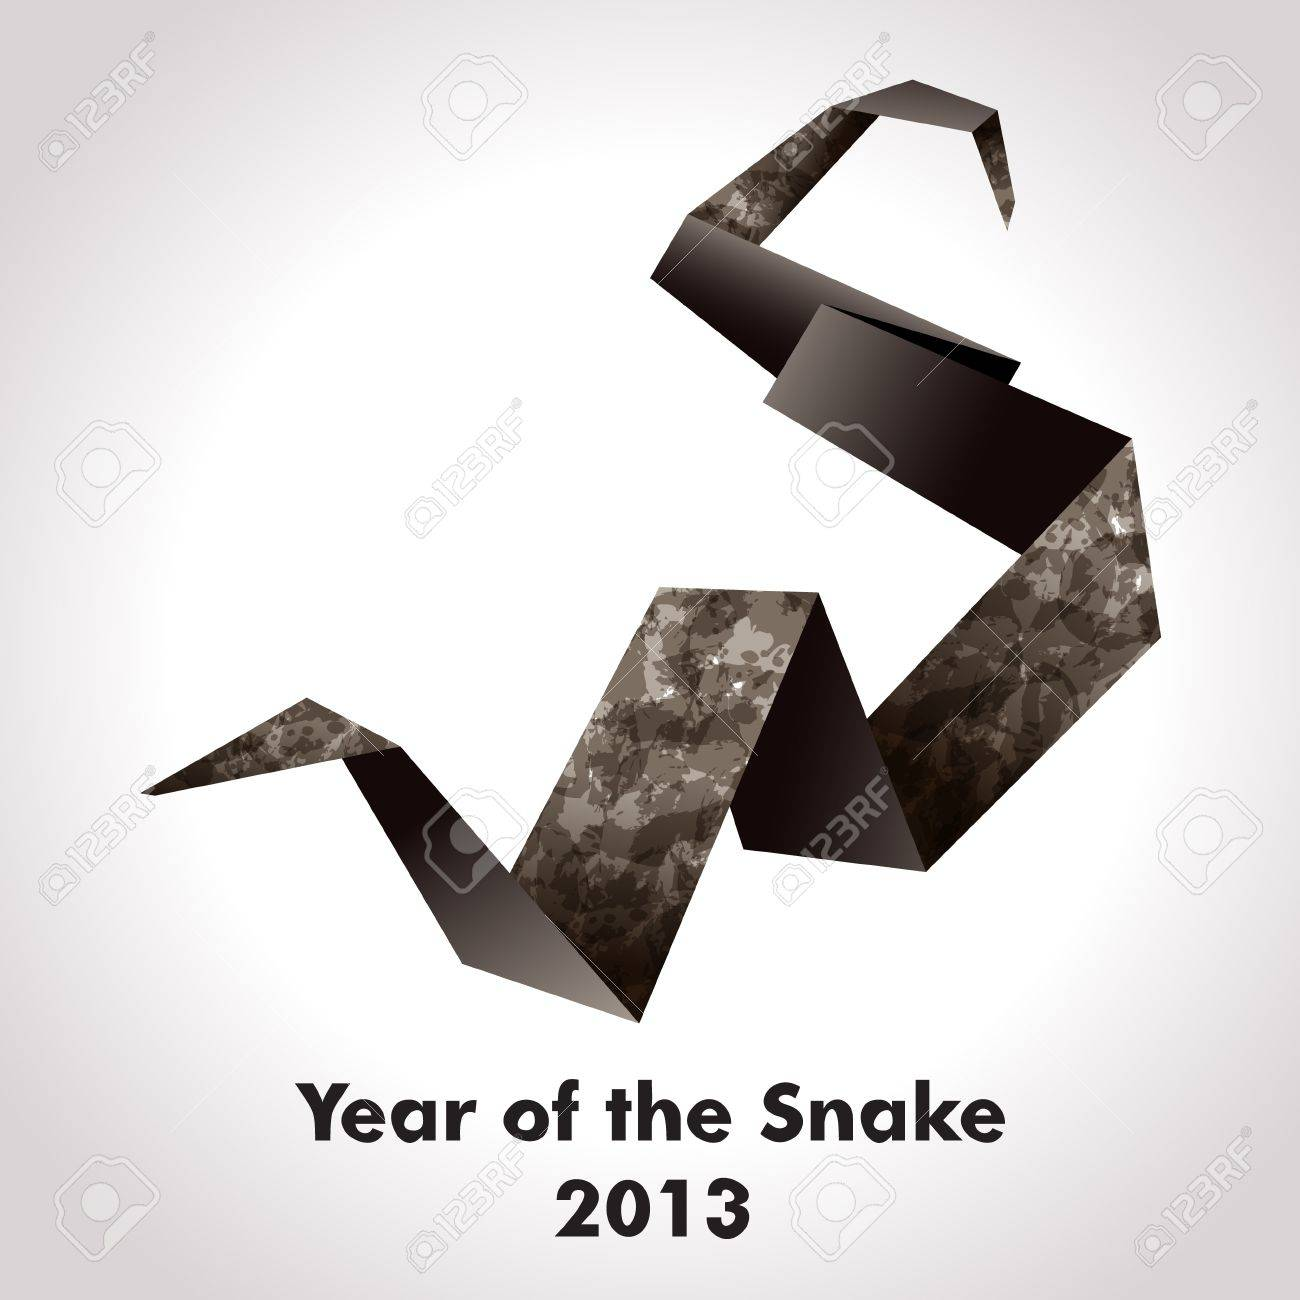 Year of the Snake design  Origami Stock Vector - 14404755